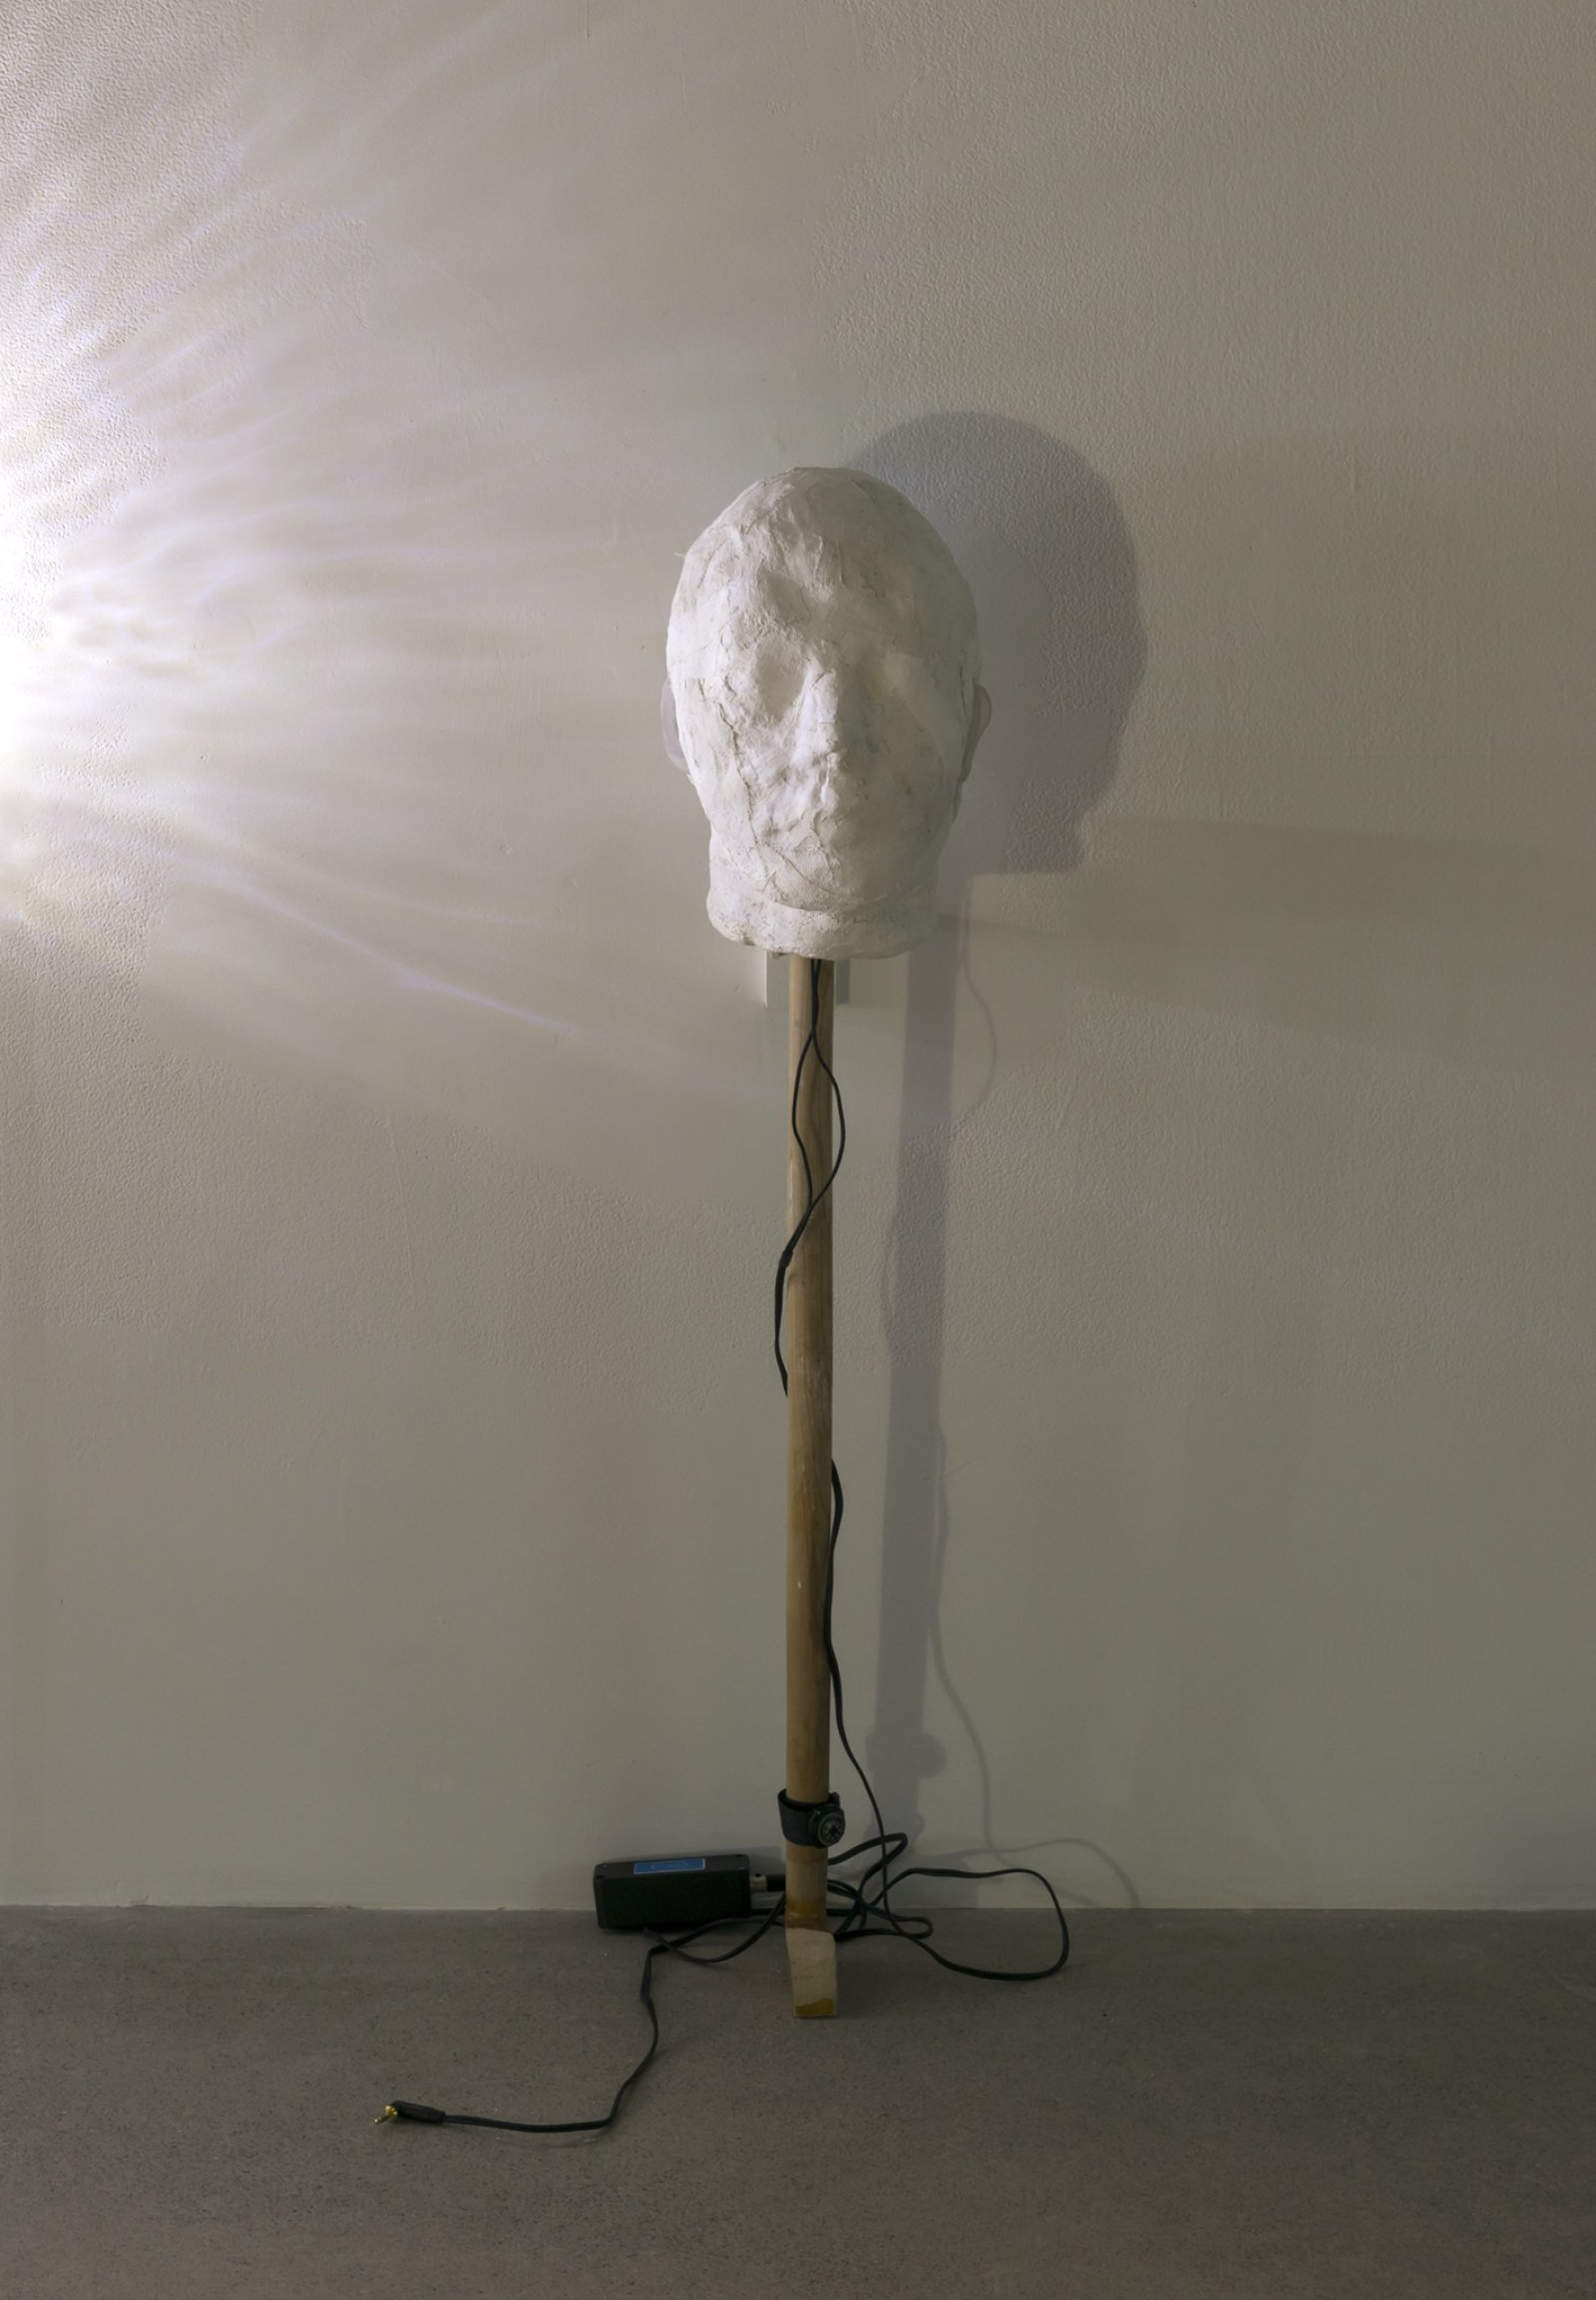 Julia Feyrer, Little Pitchers have Big Ears, 2012, plaster bandage, mugwort, mugwort oil, binaural microphones, silicone ears, cotton, felt, wood, compass, 36 x 8 x 9 in. (91 x 20 x 23 cm)